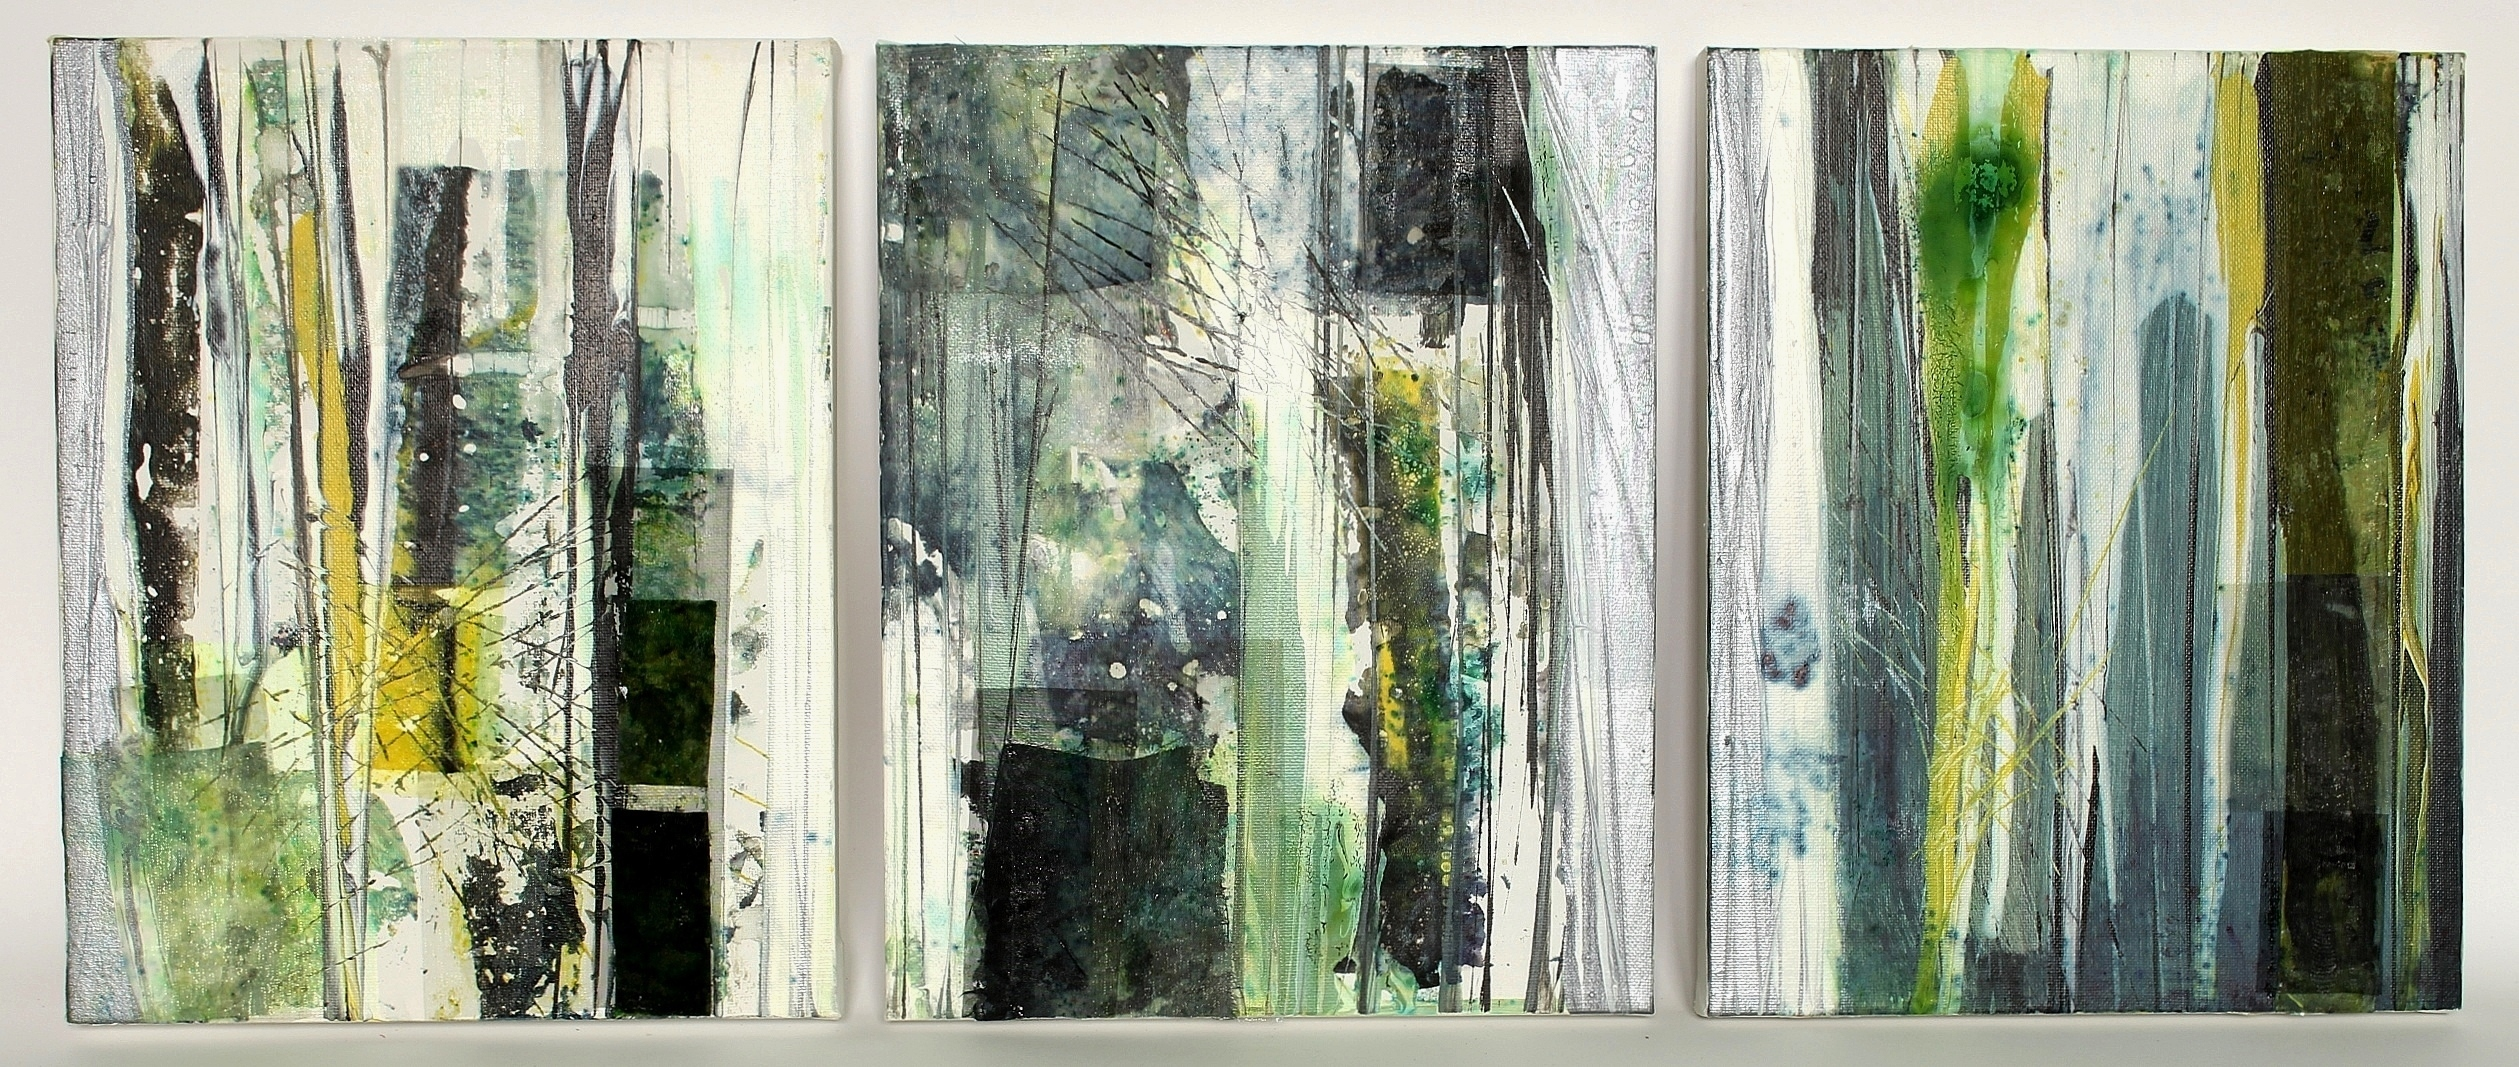 All Thawed Out (triptych), Elaine Peden